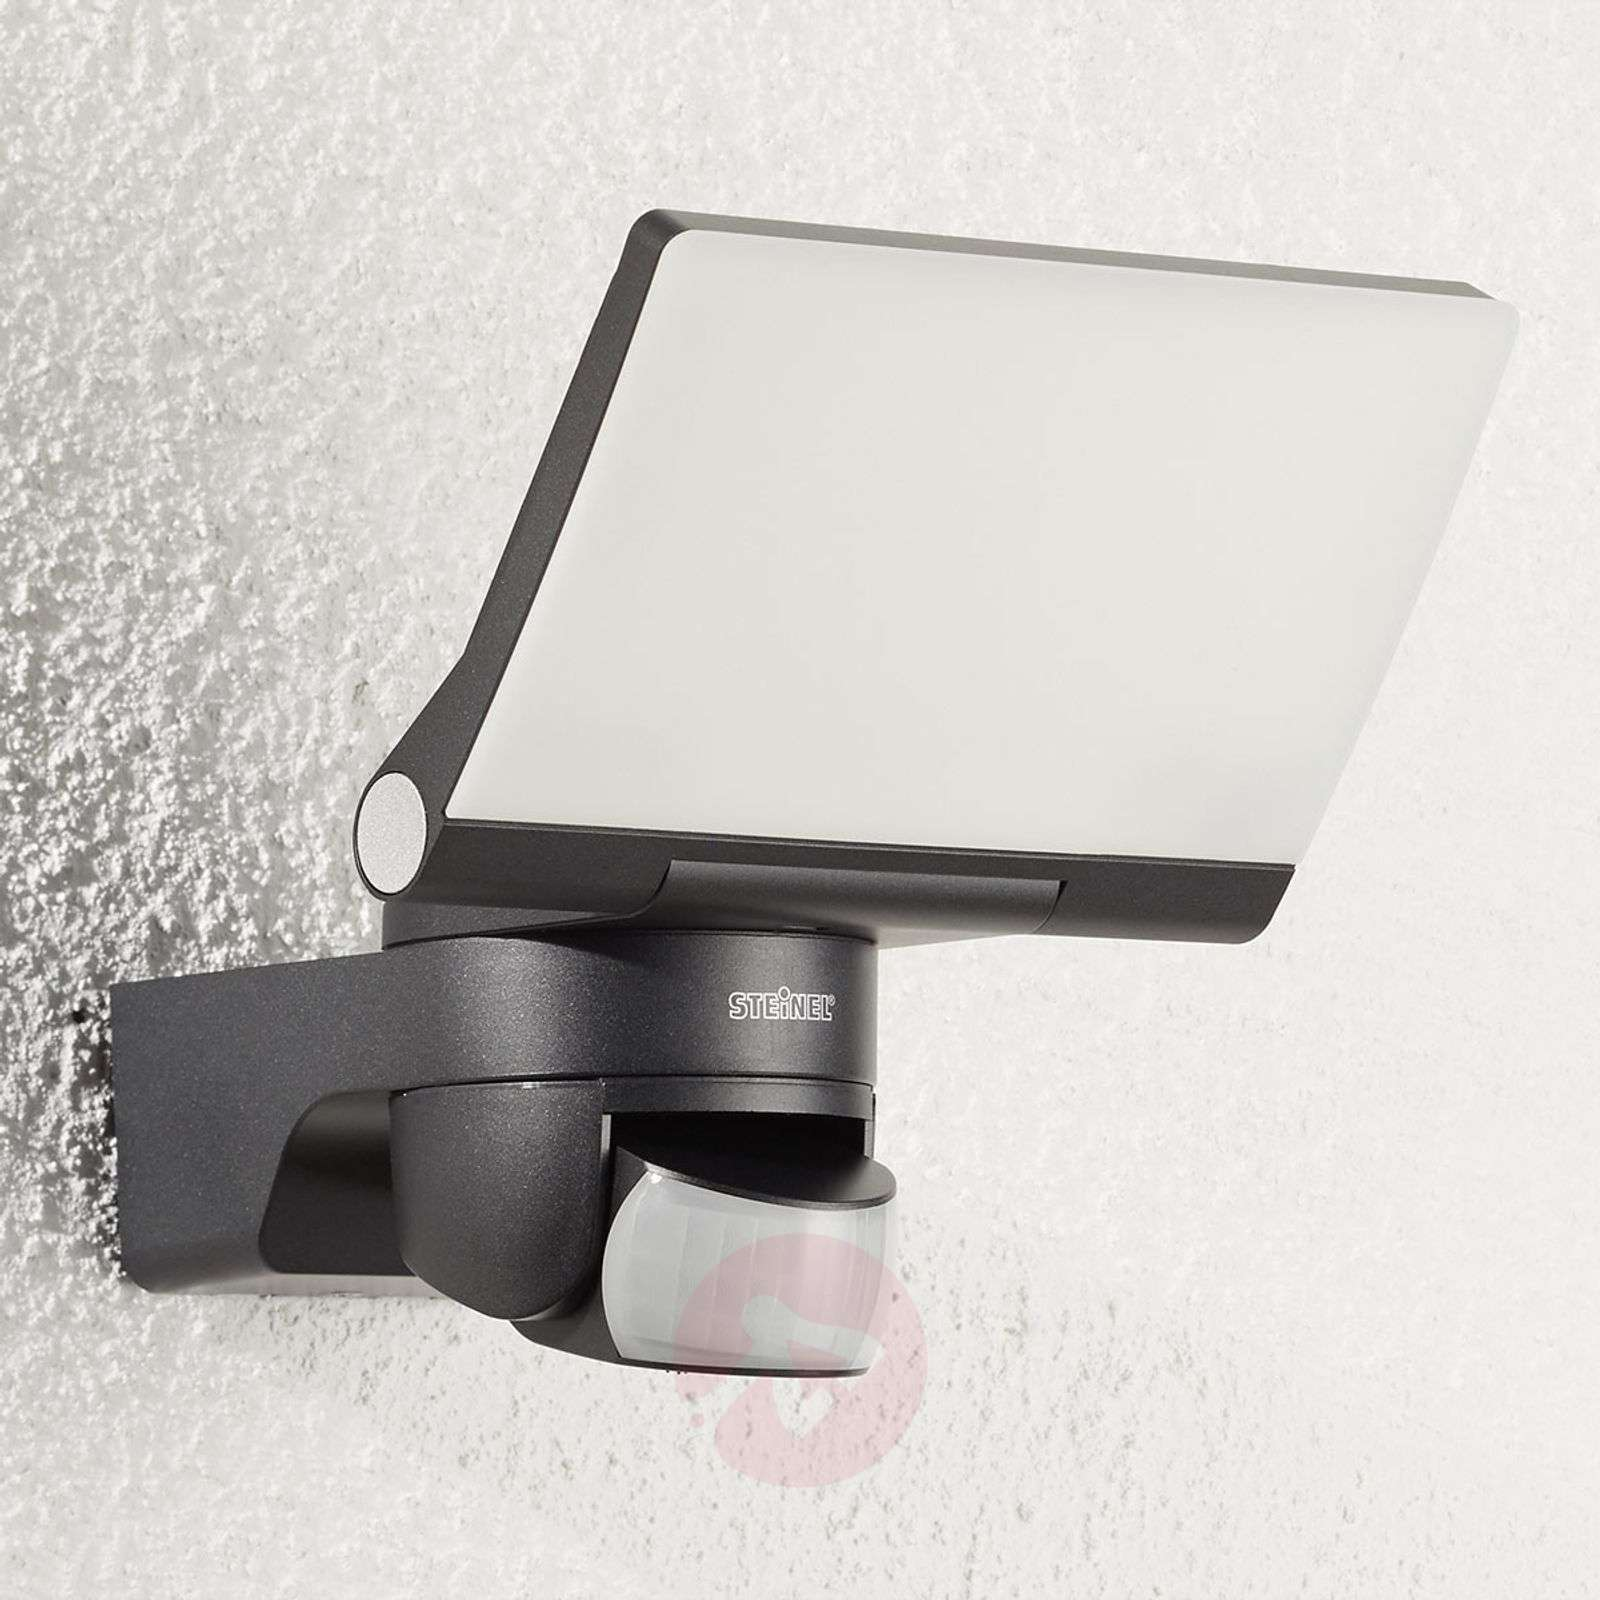 LED wall light XLED HOME 2 with motion sensor-8505694-02